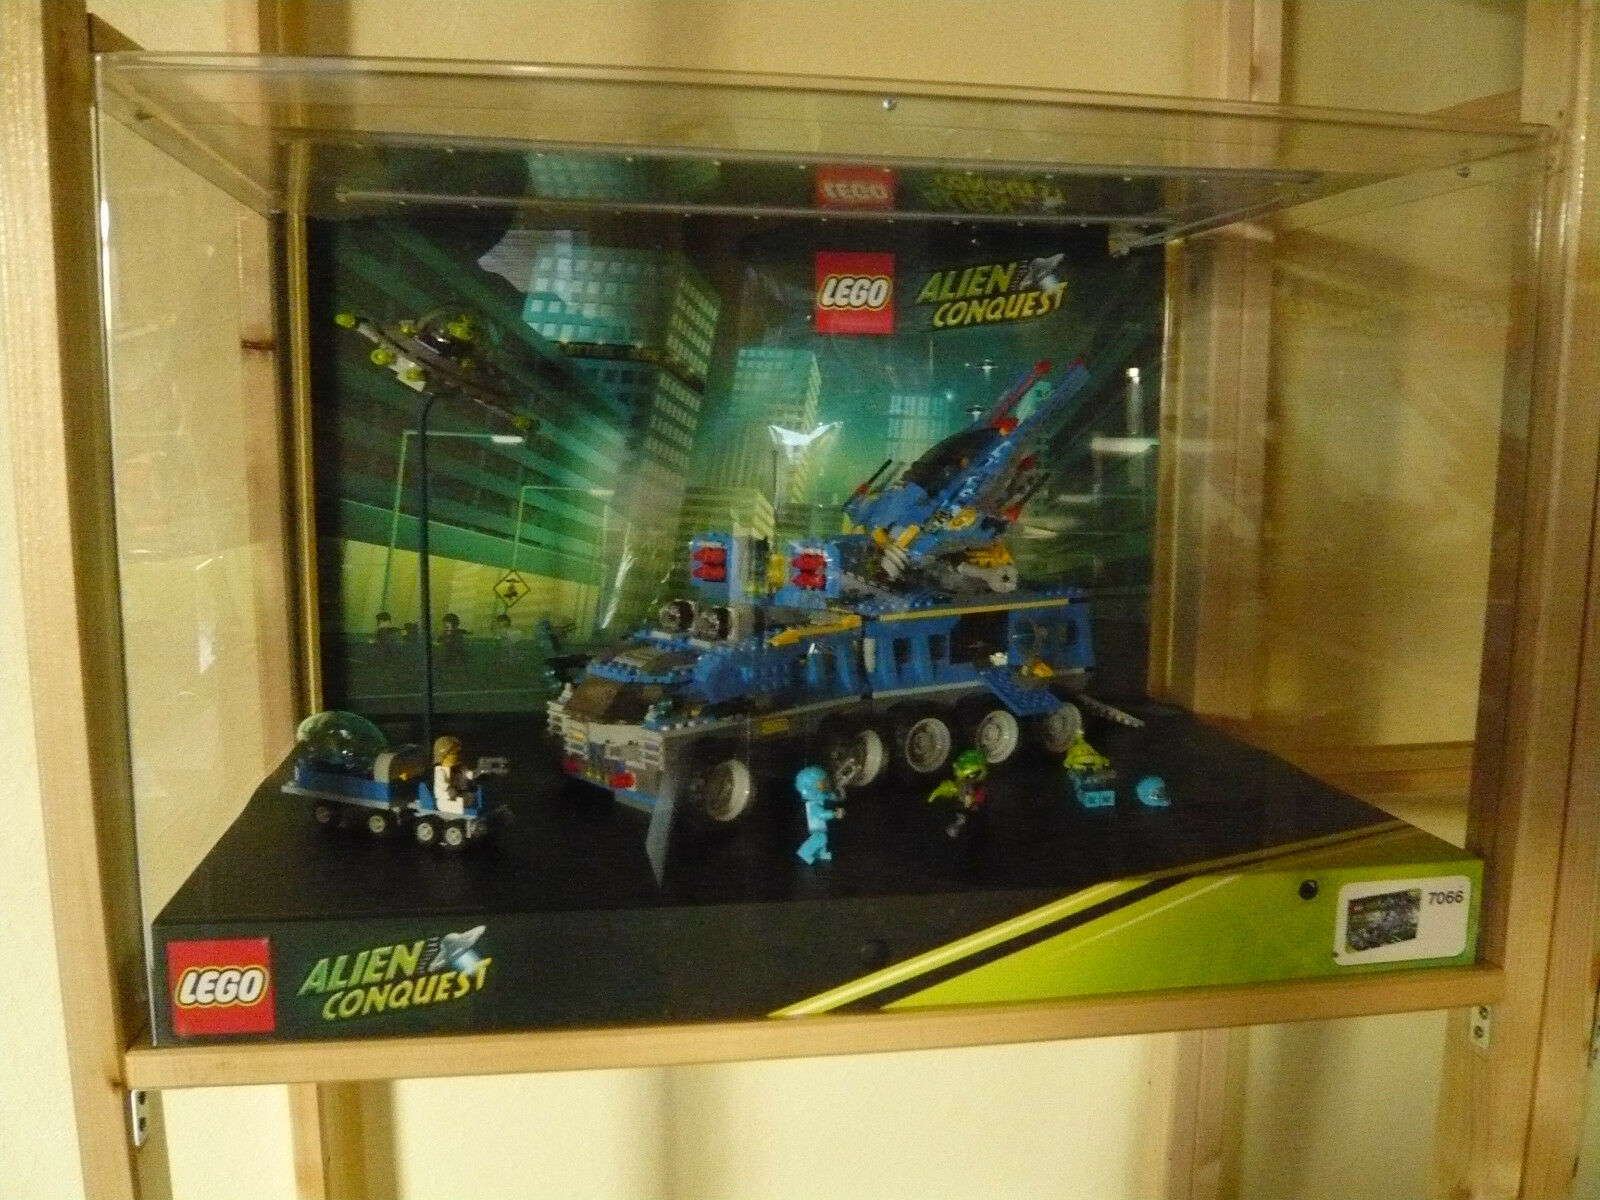 LEGO - Schaukasten - Alien Conquest - Art.7066 - Showcase